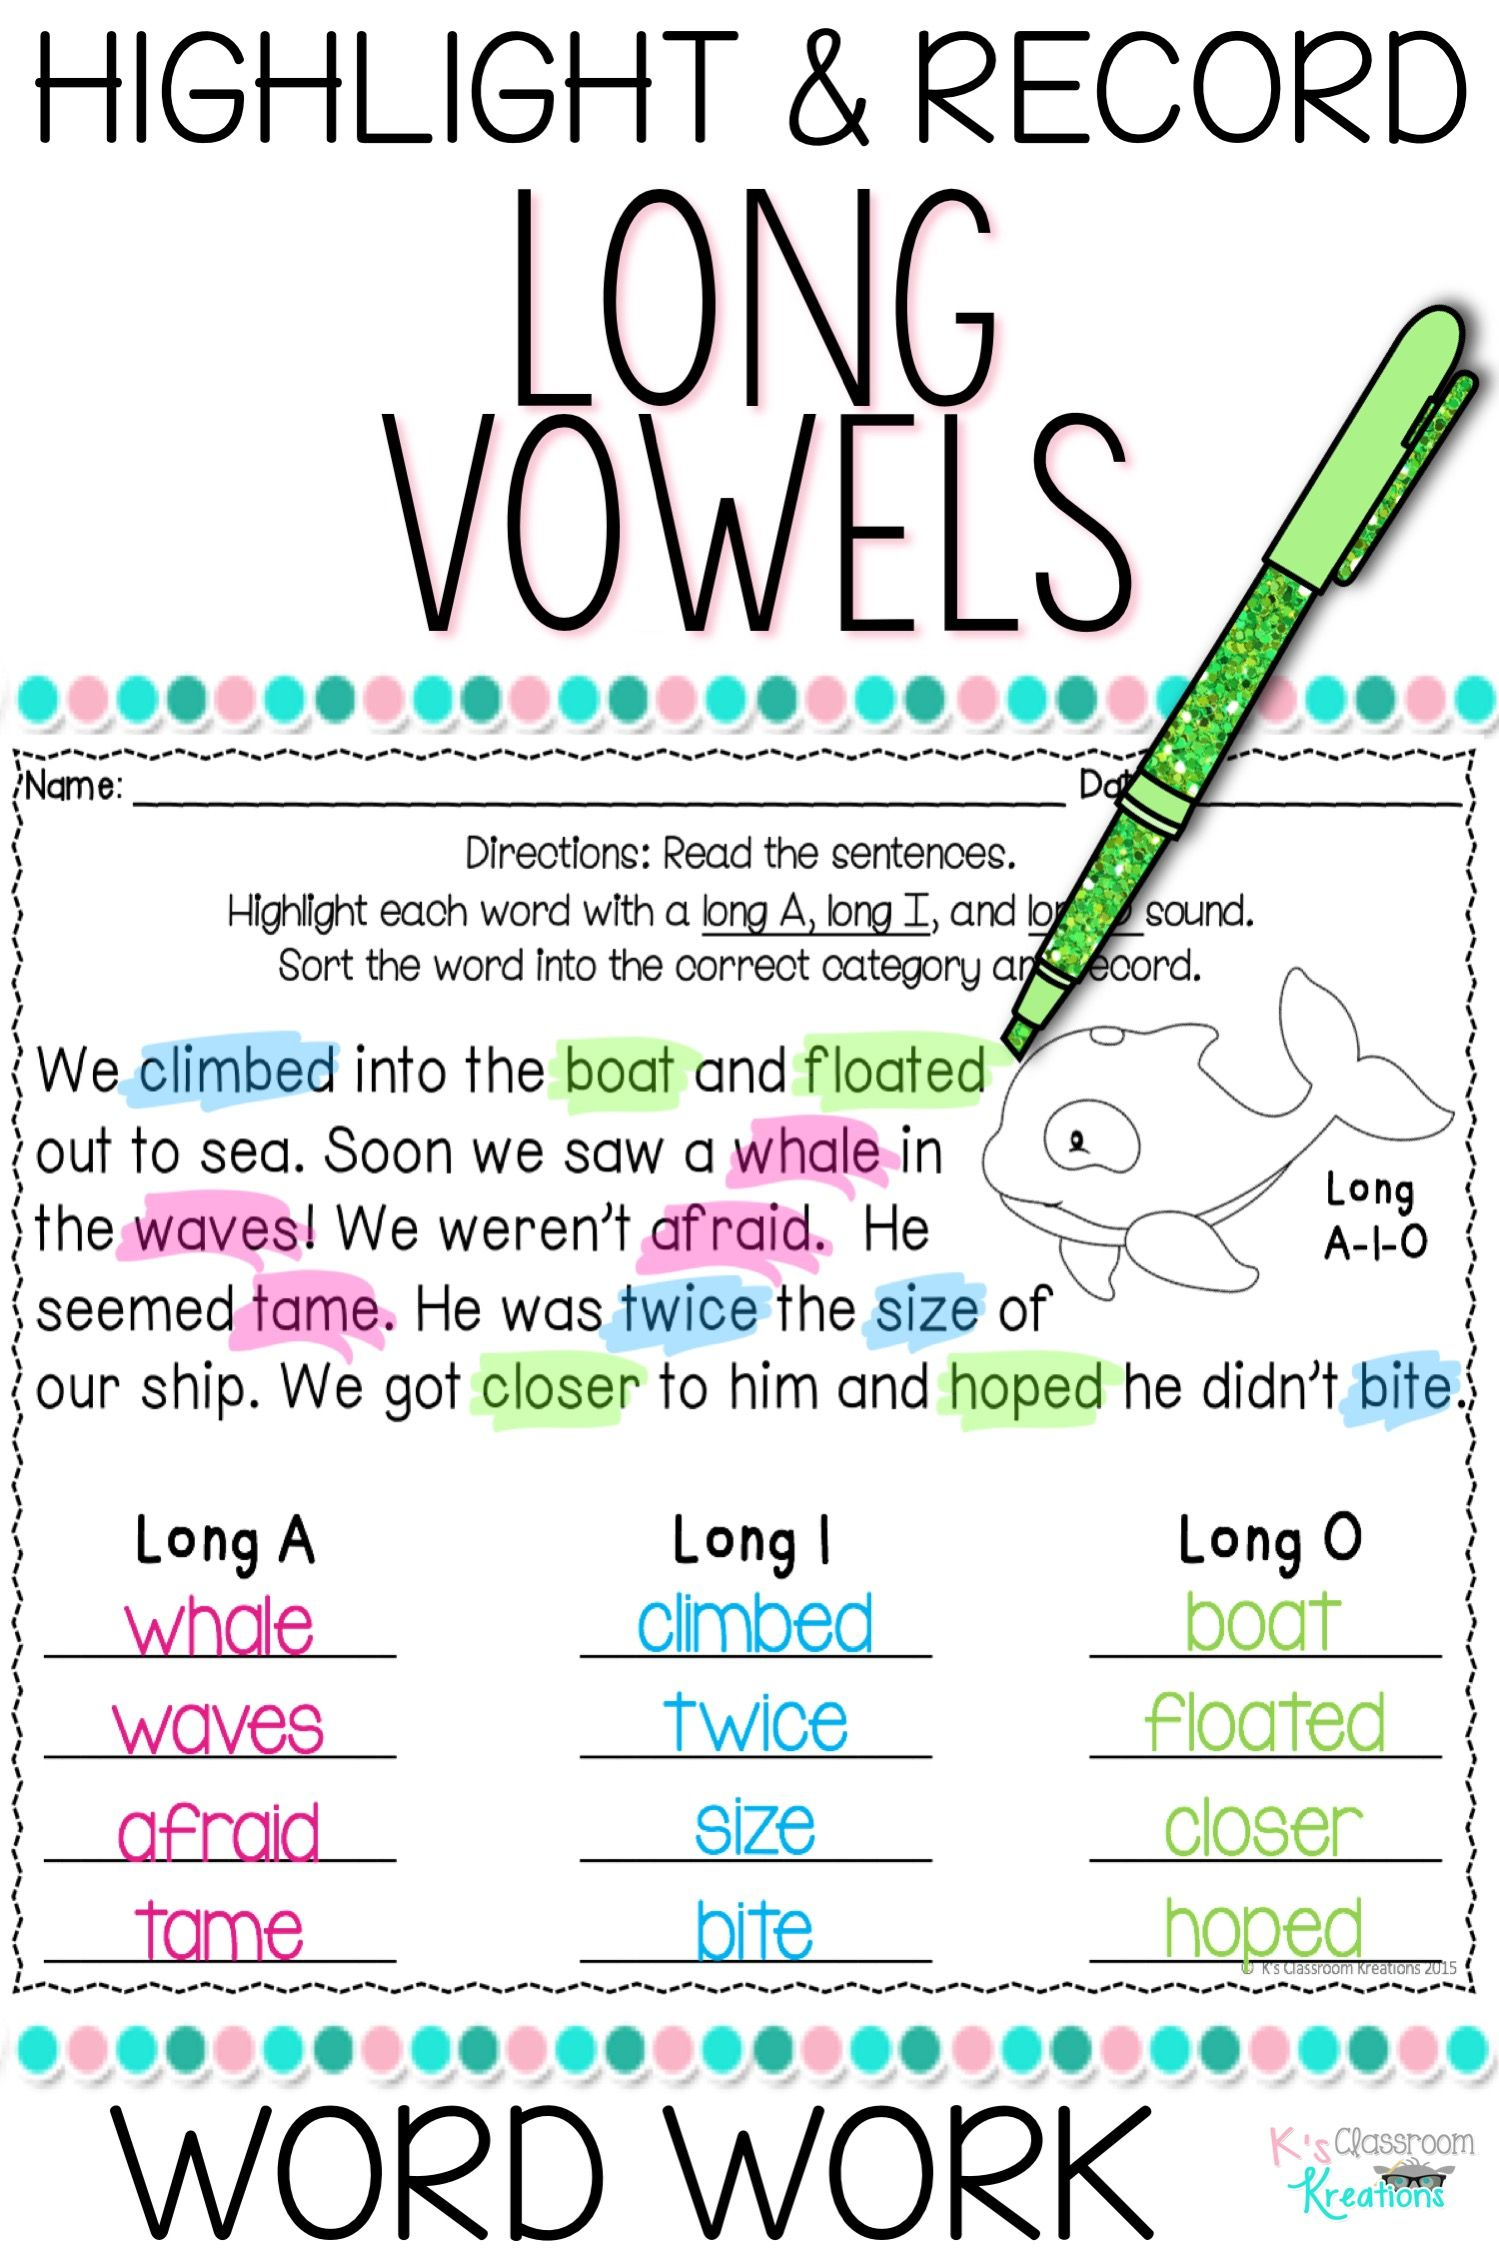 Long Vowel Word Work Highlight And Record Worksheets